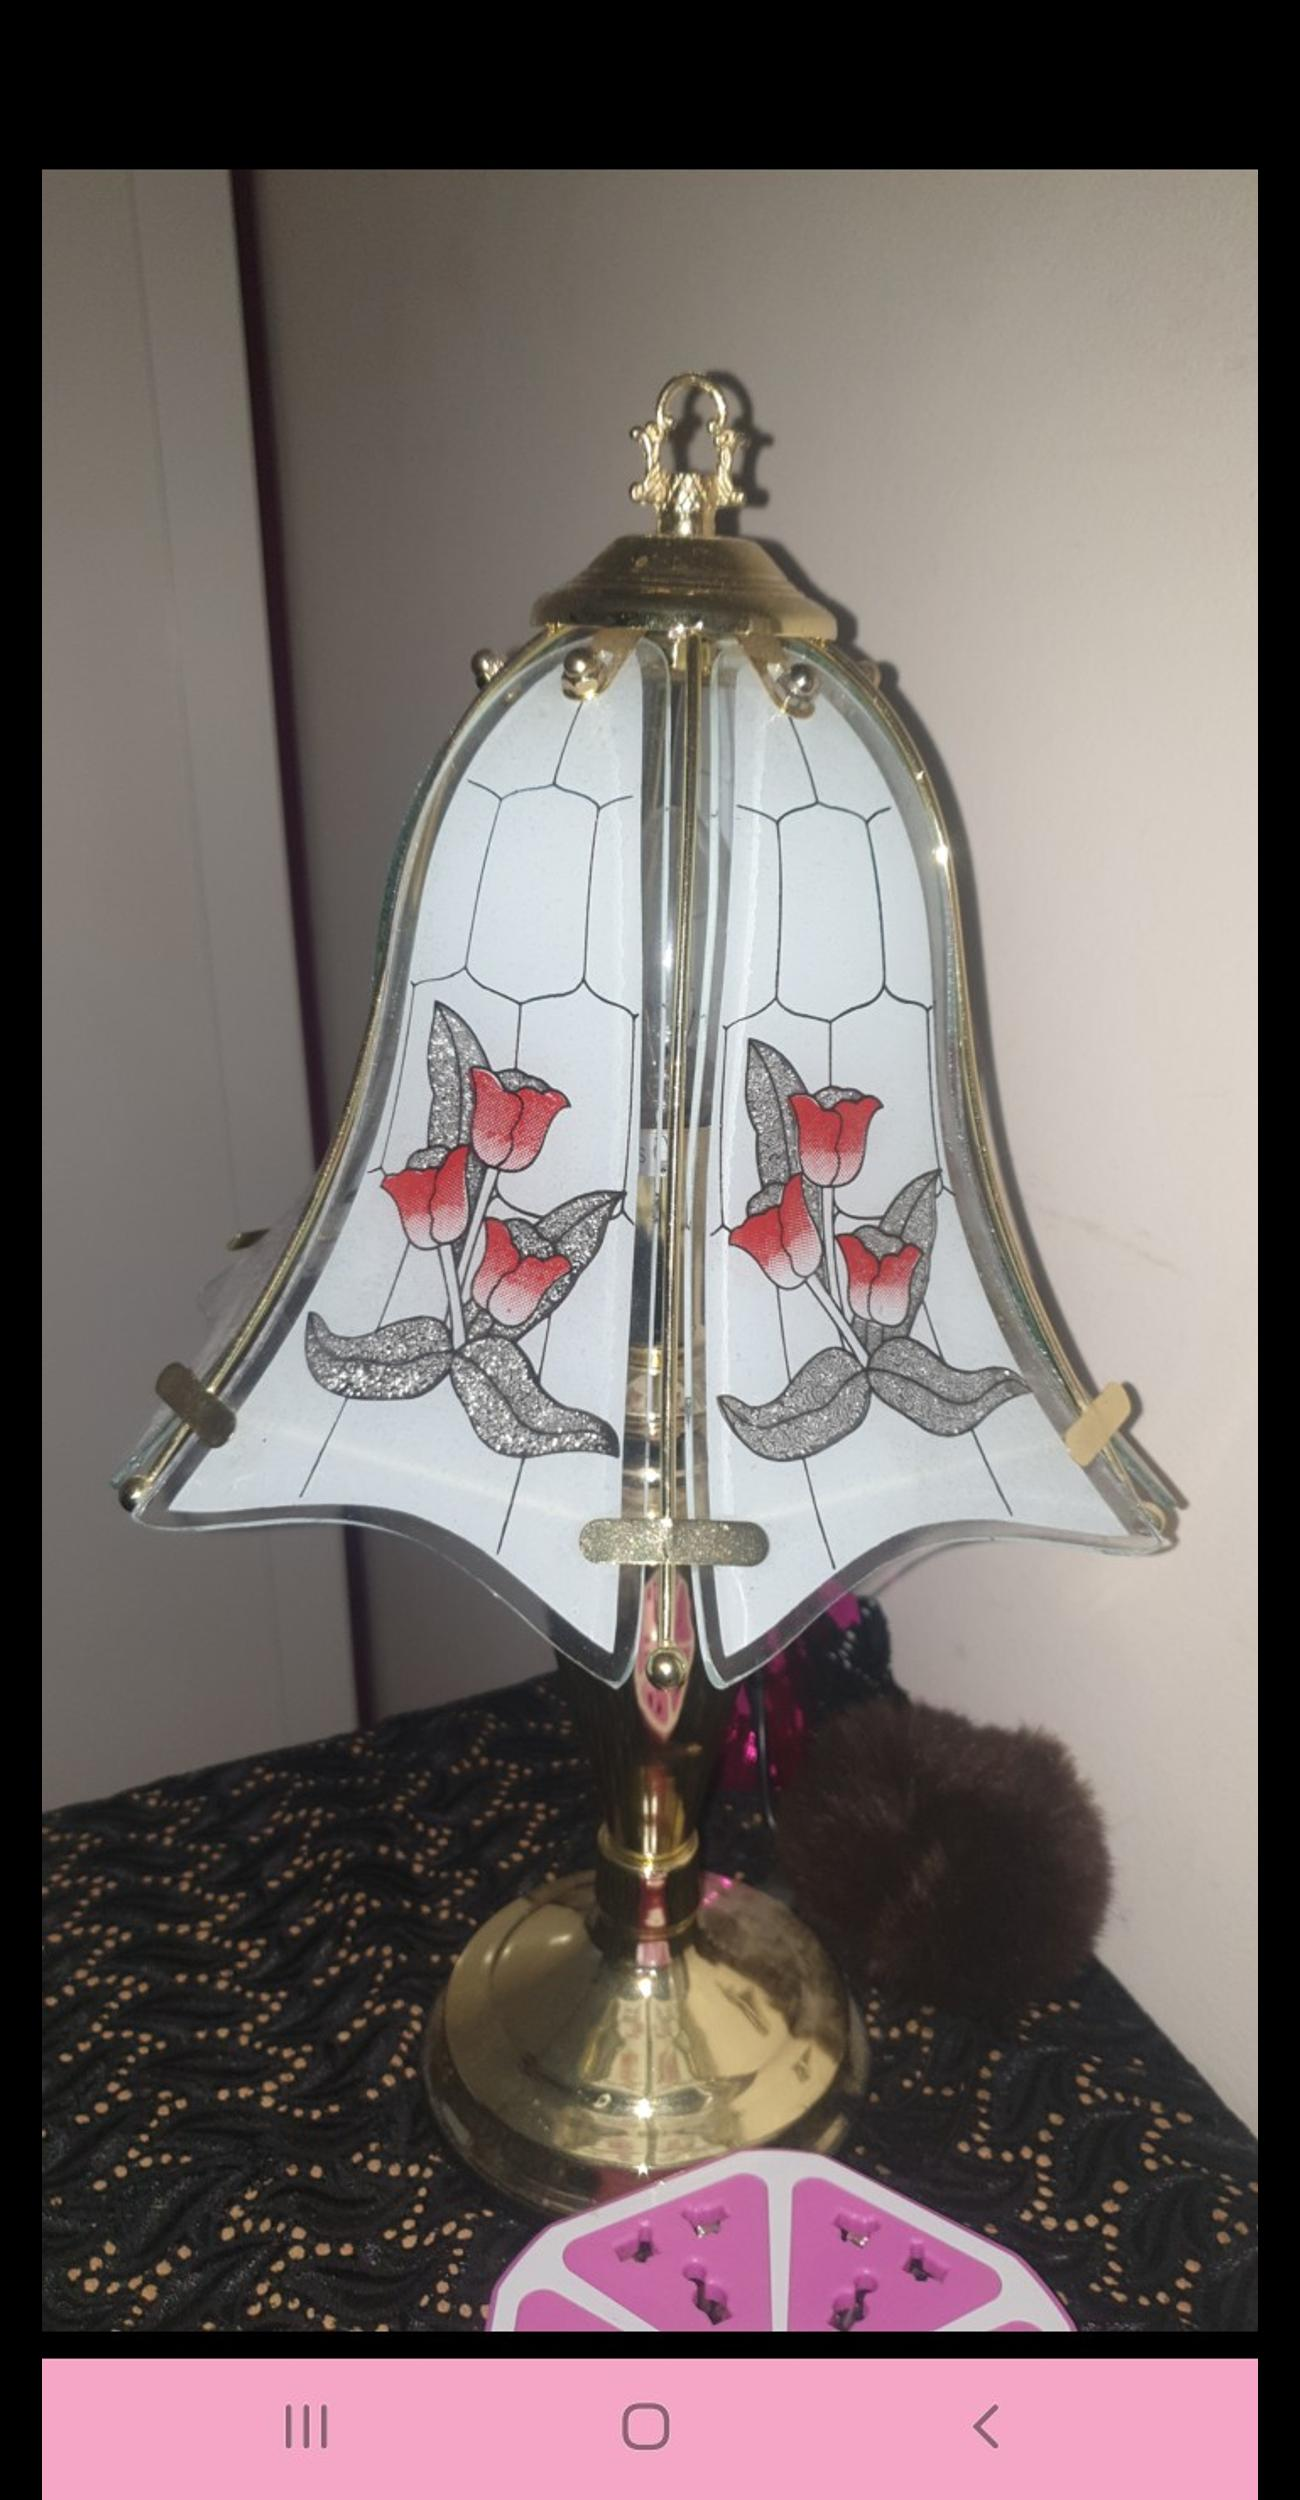 I have this beautiful vintage lamp touch its in beautiful condition and working order open to offers